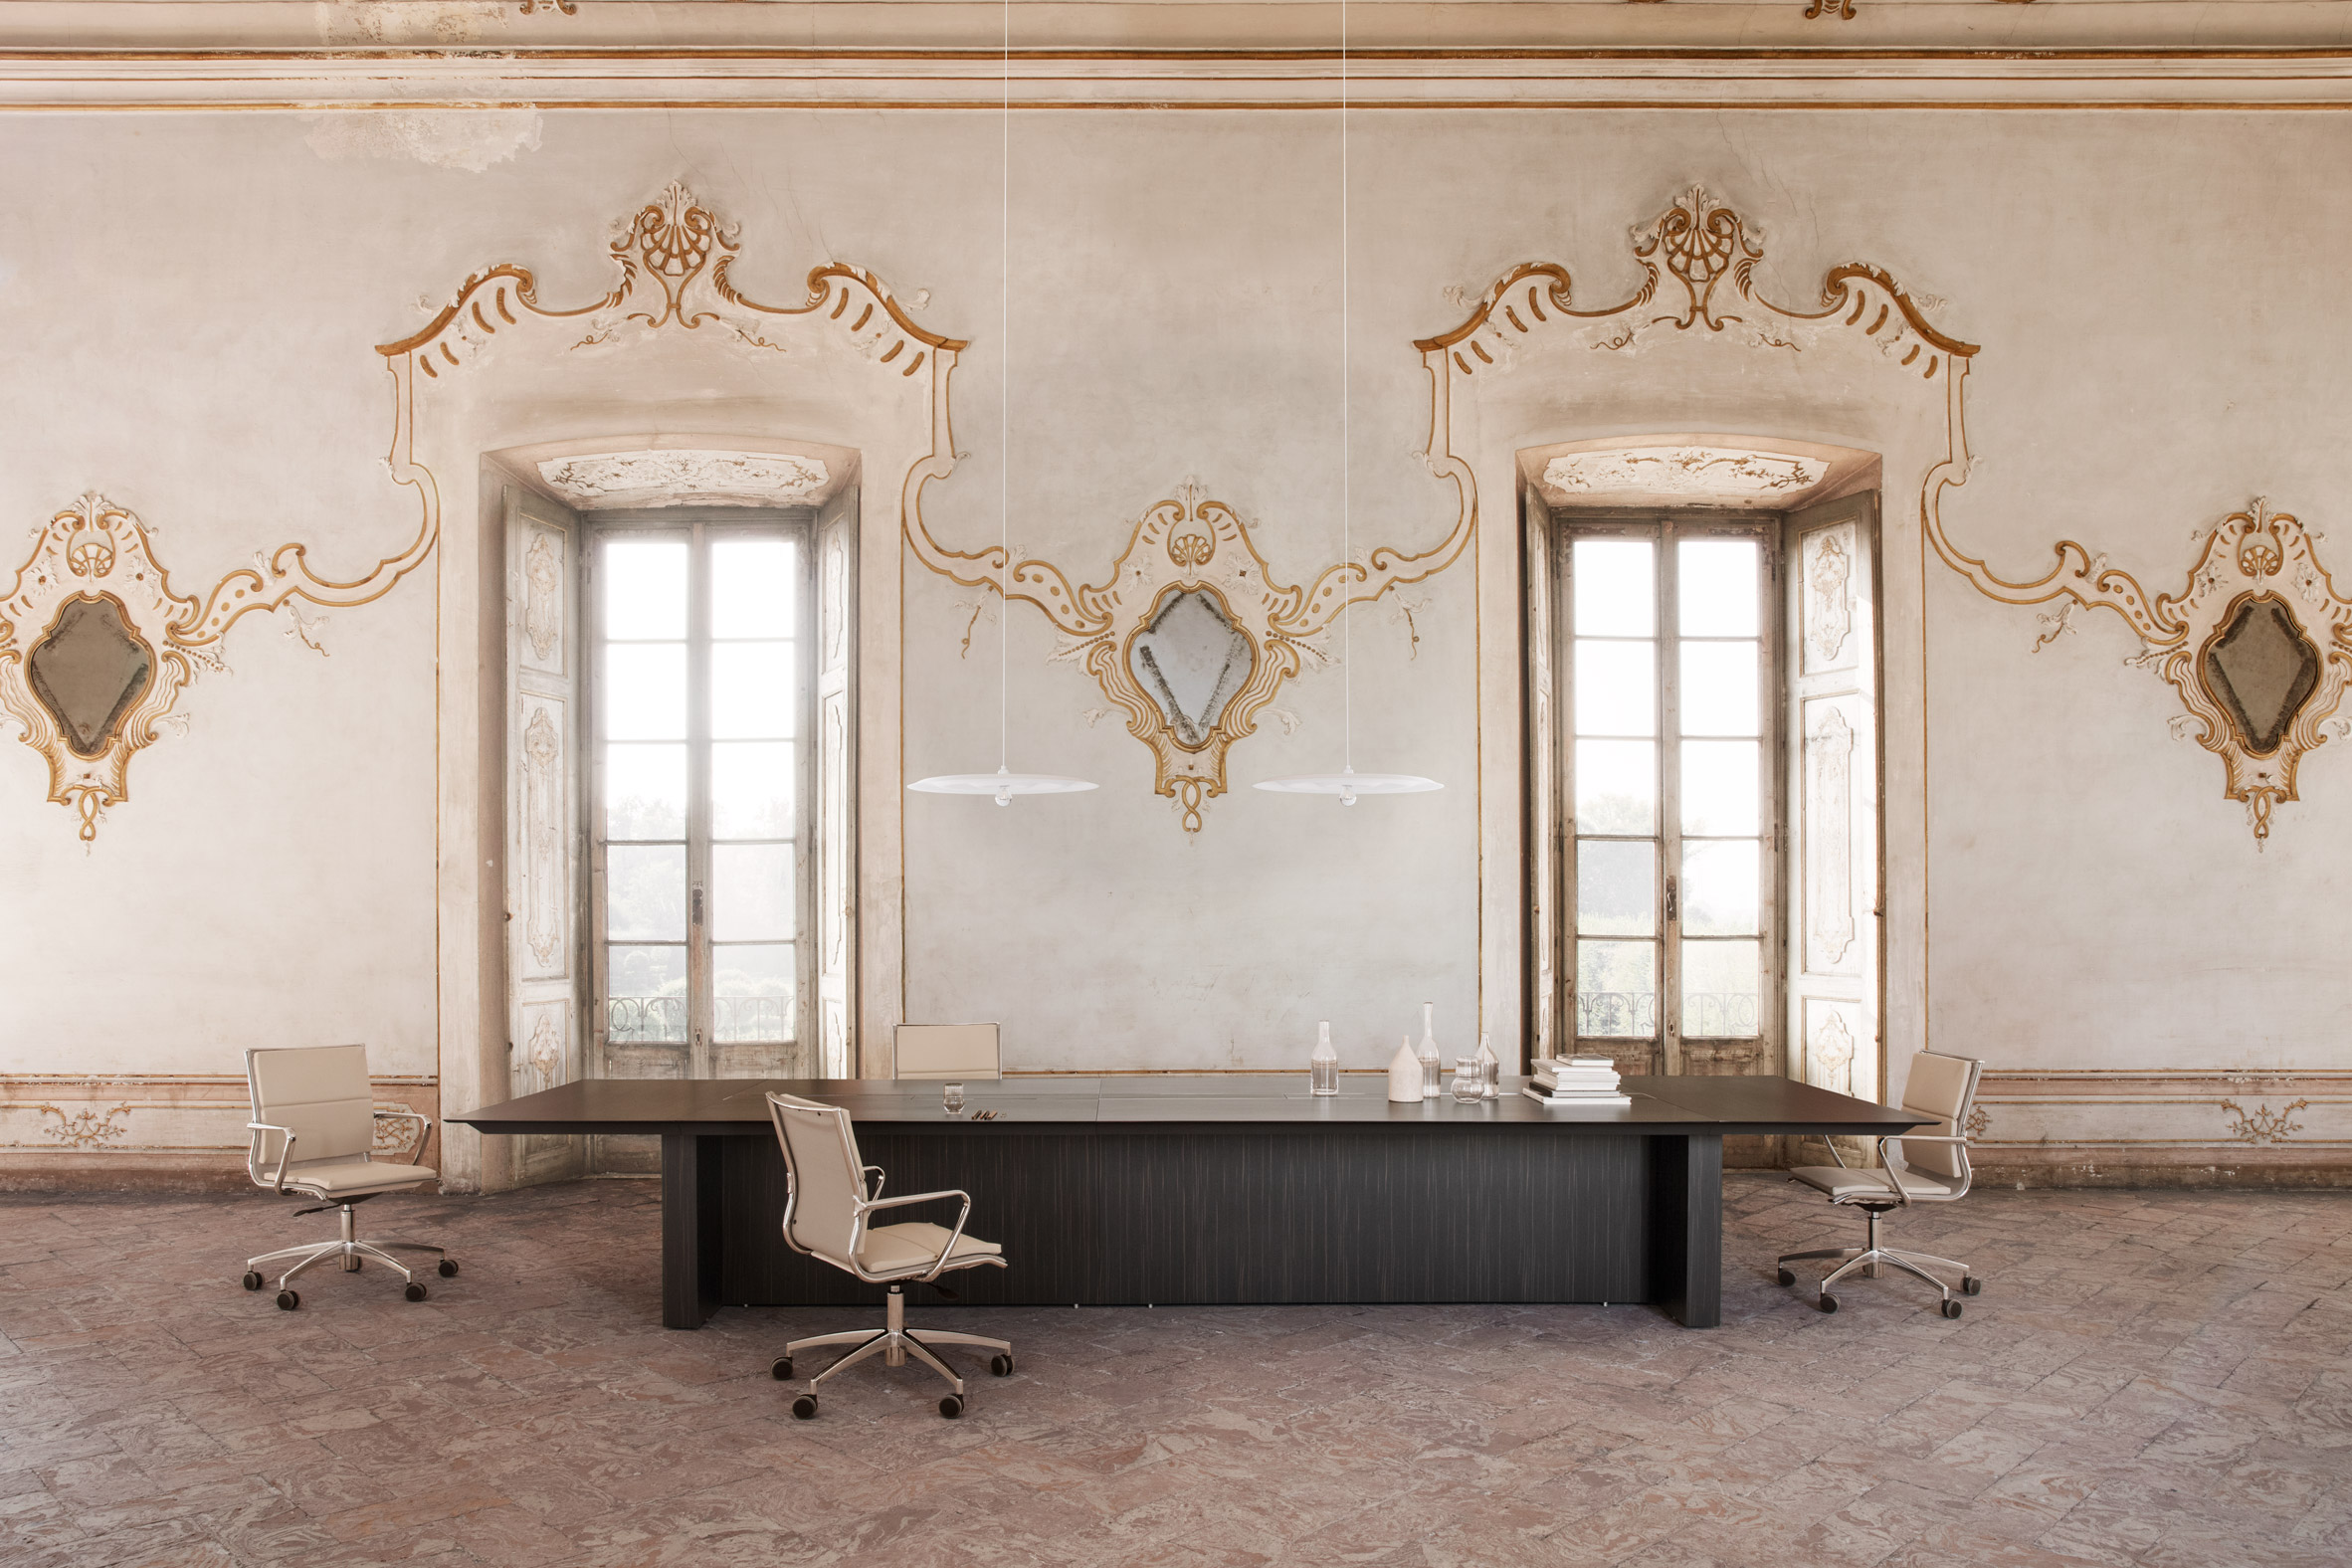 An office with a dark conference table